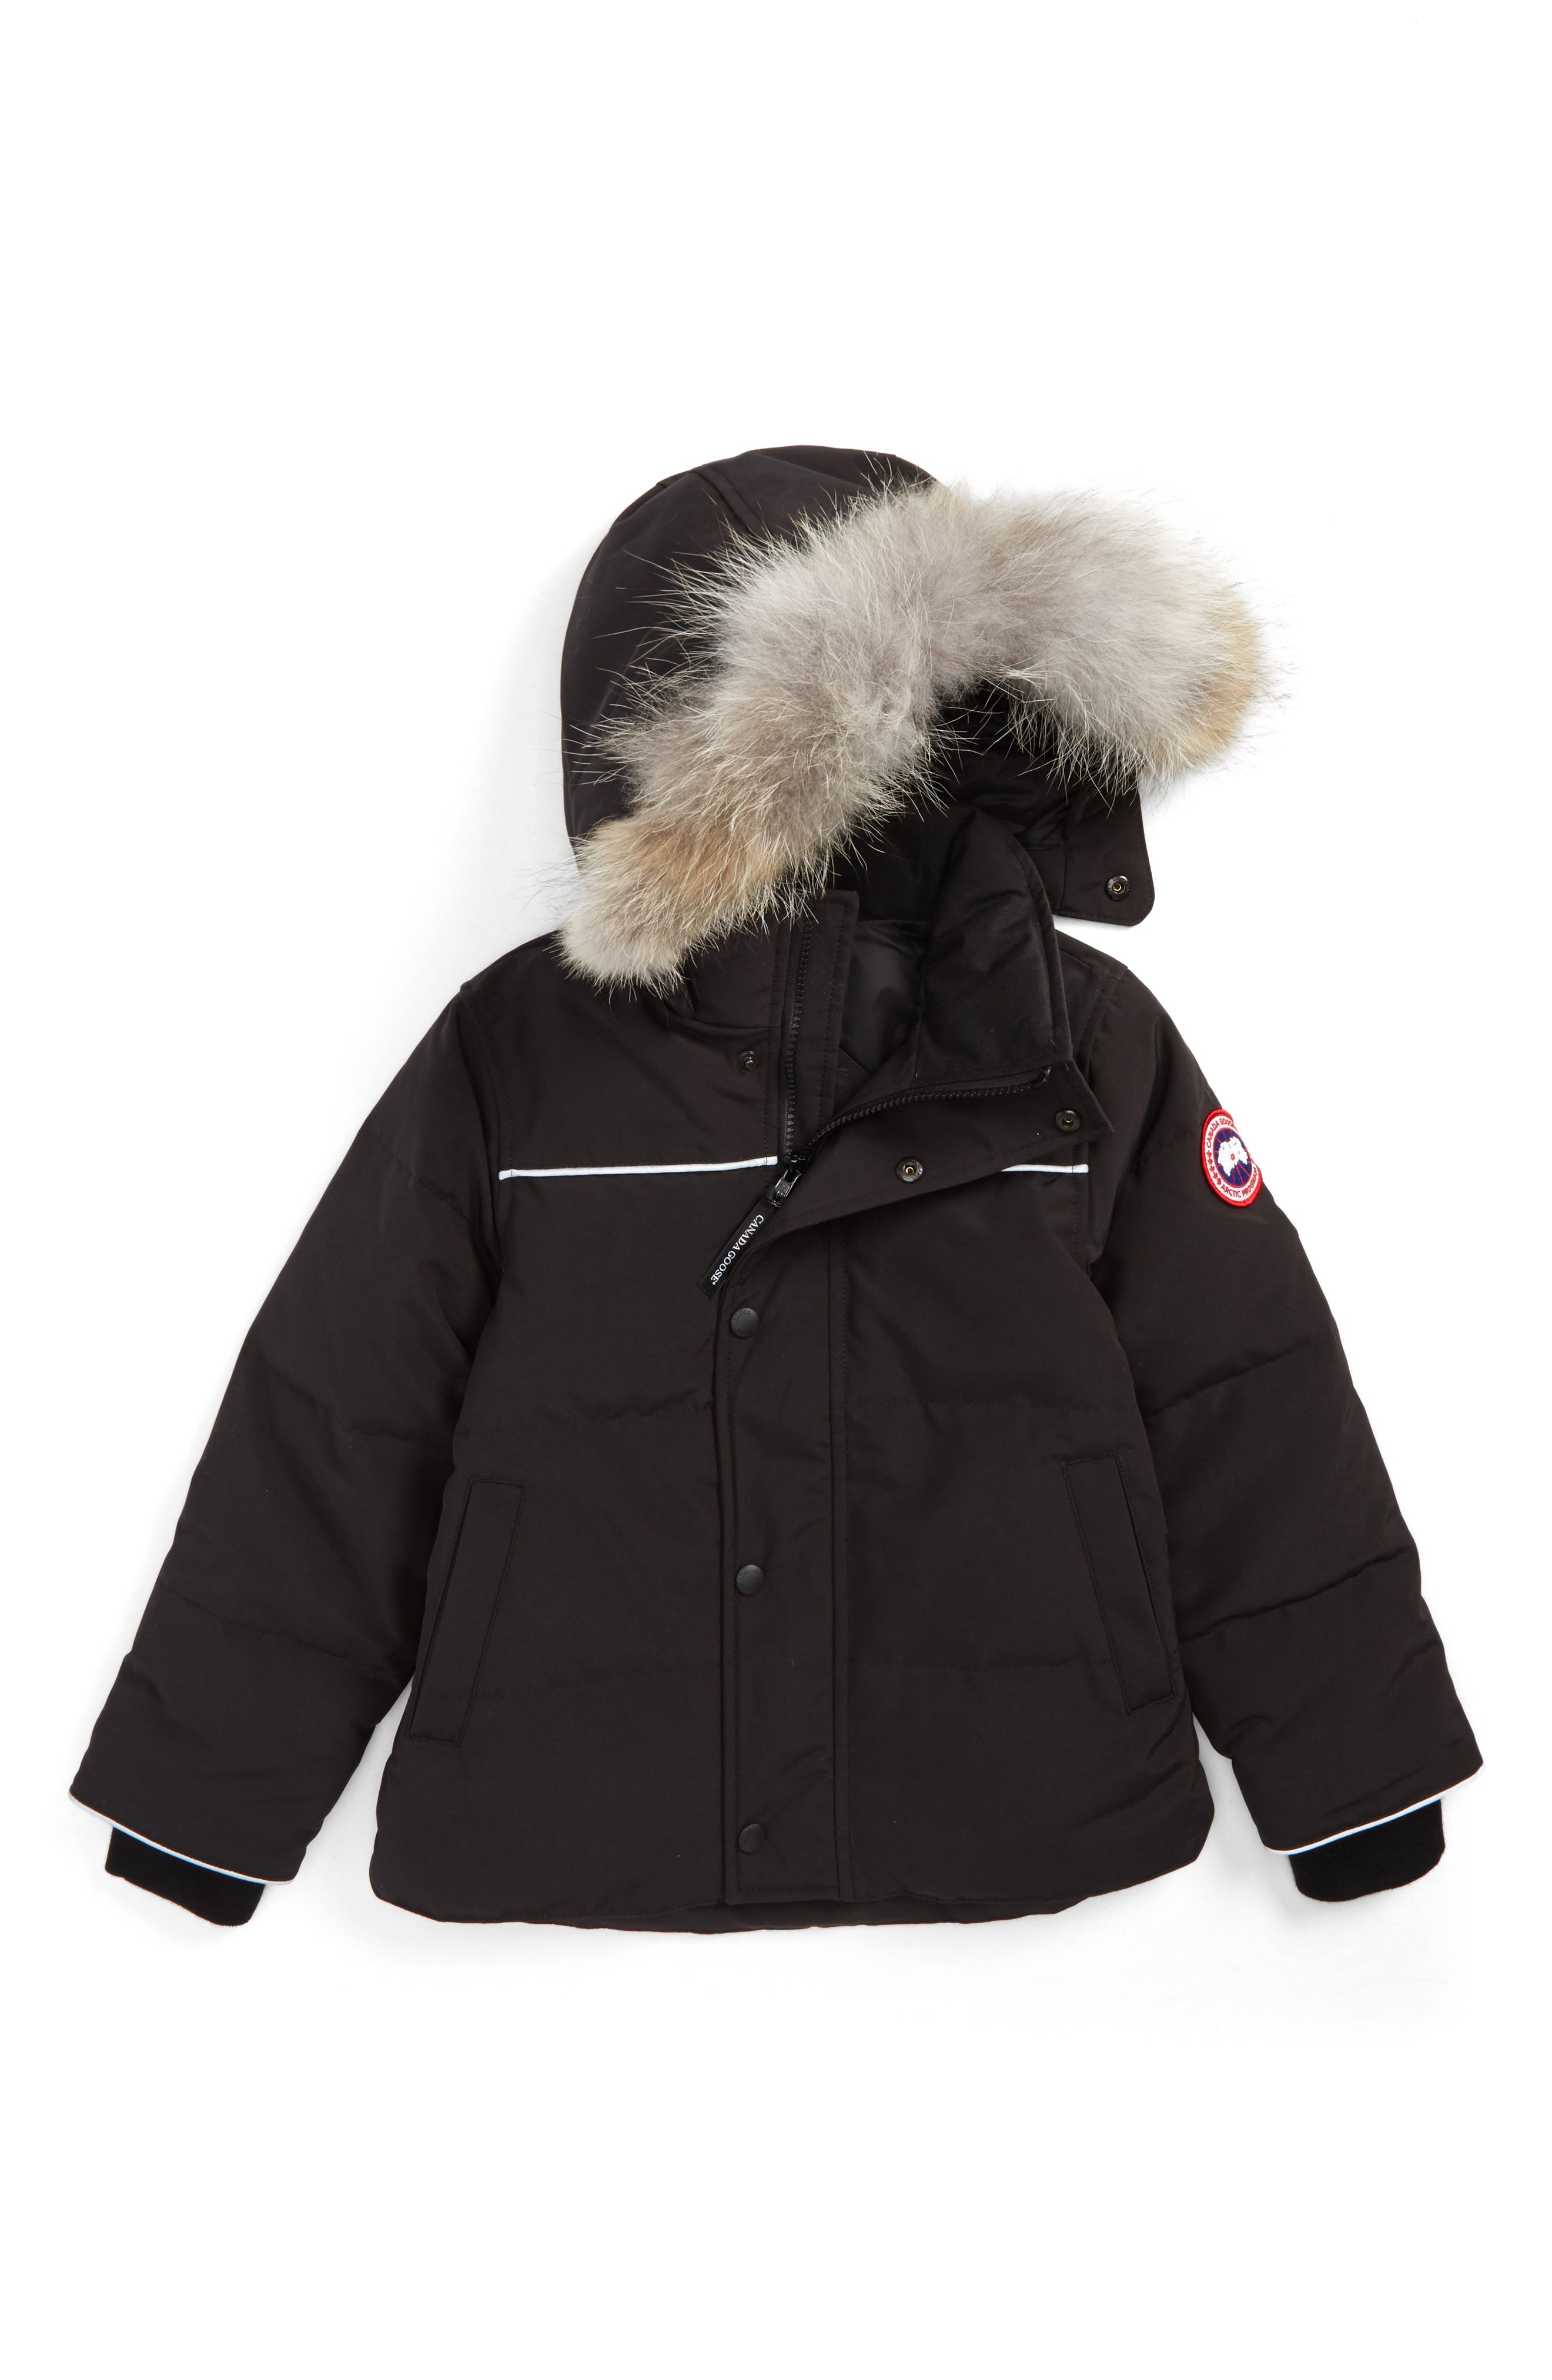 Alternate Image 1 Selected - Canada Goose Snowy Owl Down Parka with Genuine Coyote Fur Trim (Toddler Kids & Little Kids)